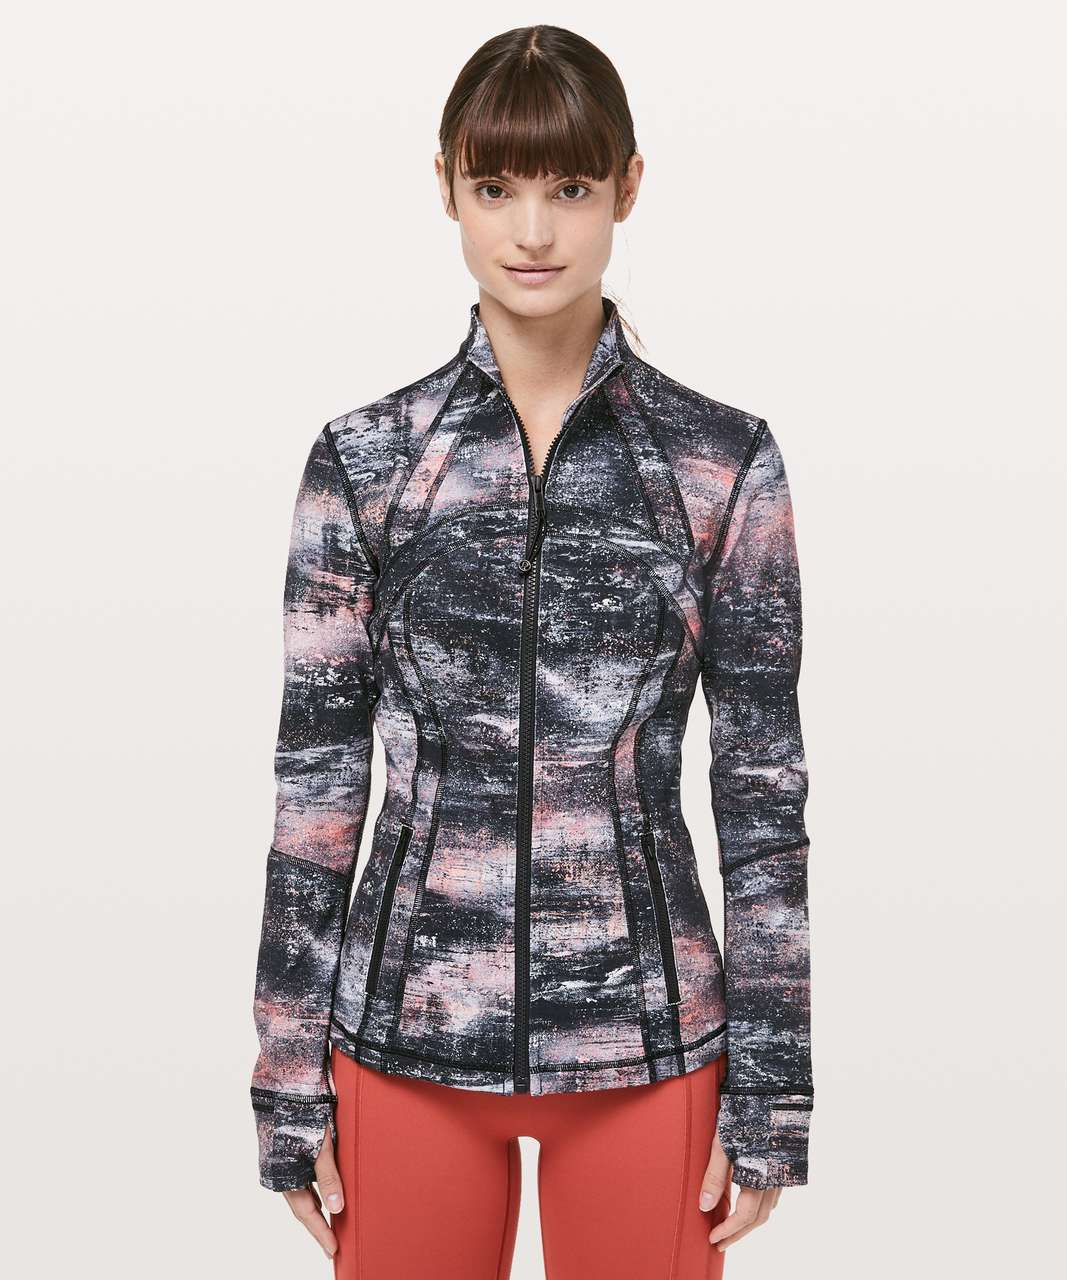 Lululemon Define Jacket - Azurite Poppy Coral Multi